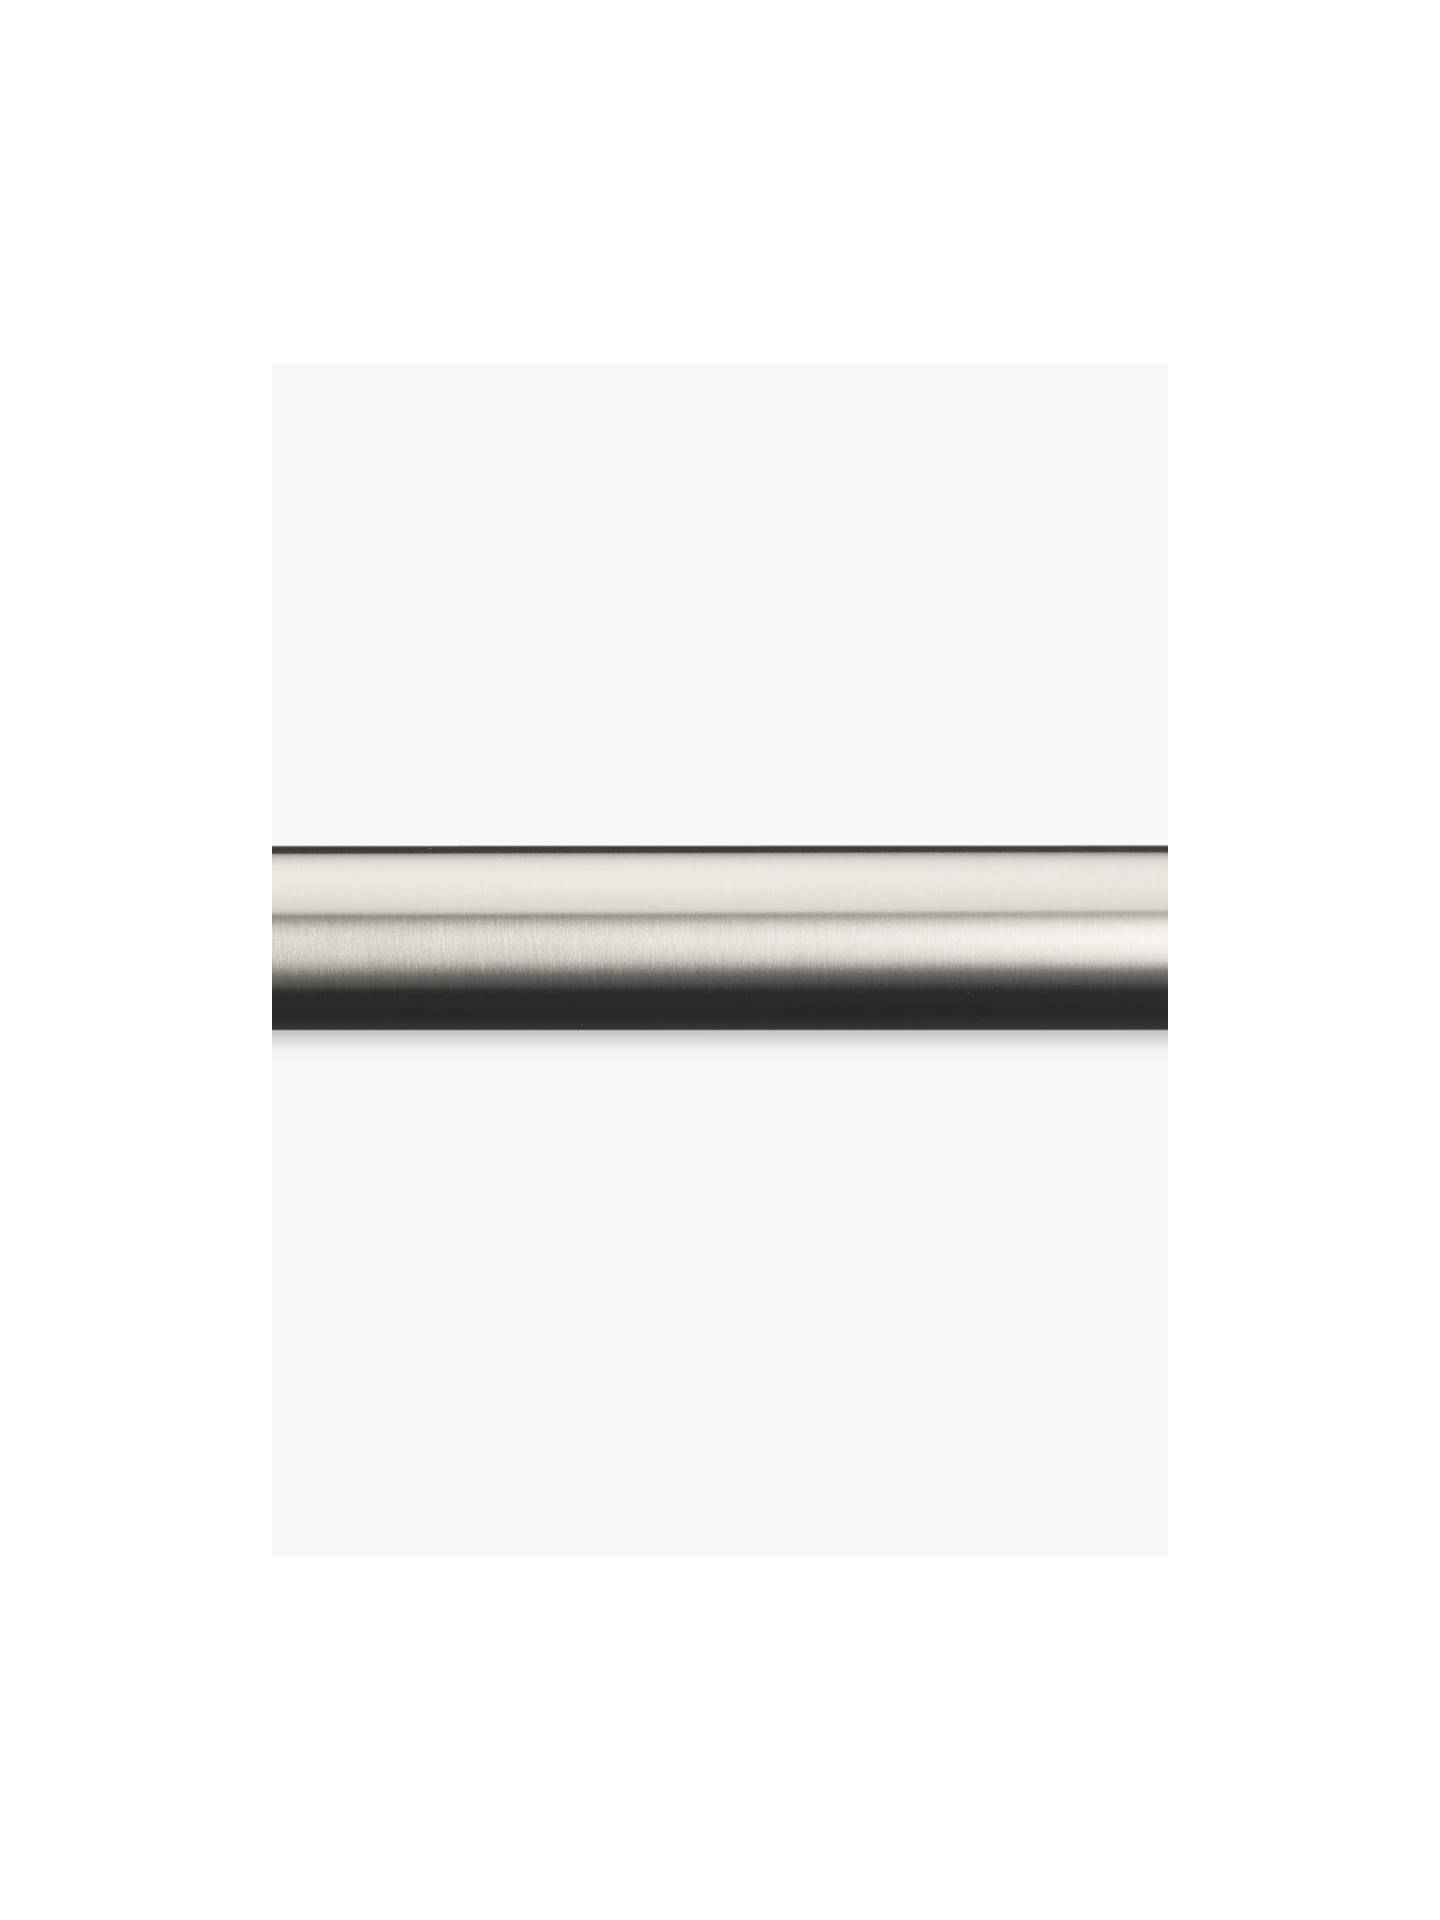 BuyJohn Lewis Stainless Steel Curtain Pole Kit, L150cm x Dia.25mm Online at johnlewis.com